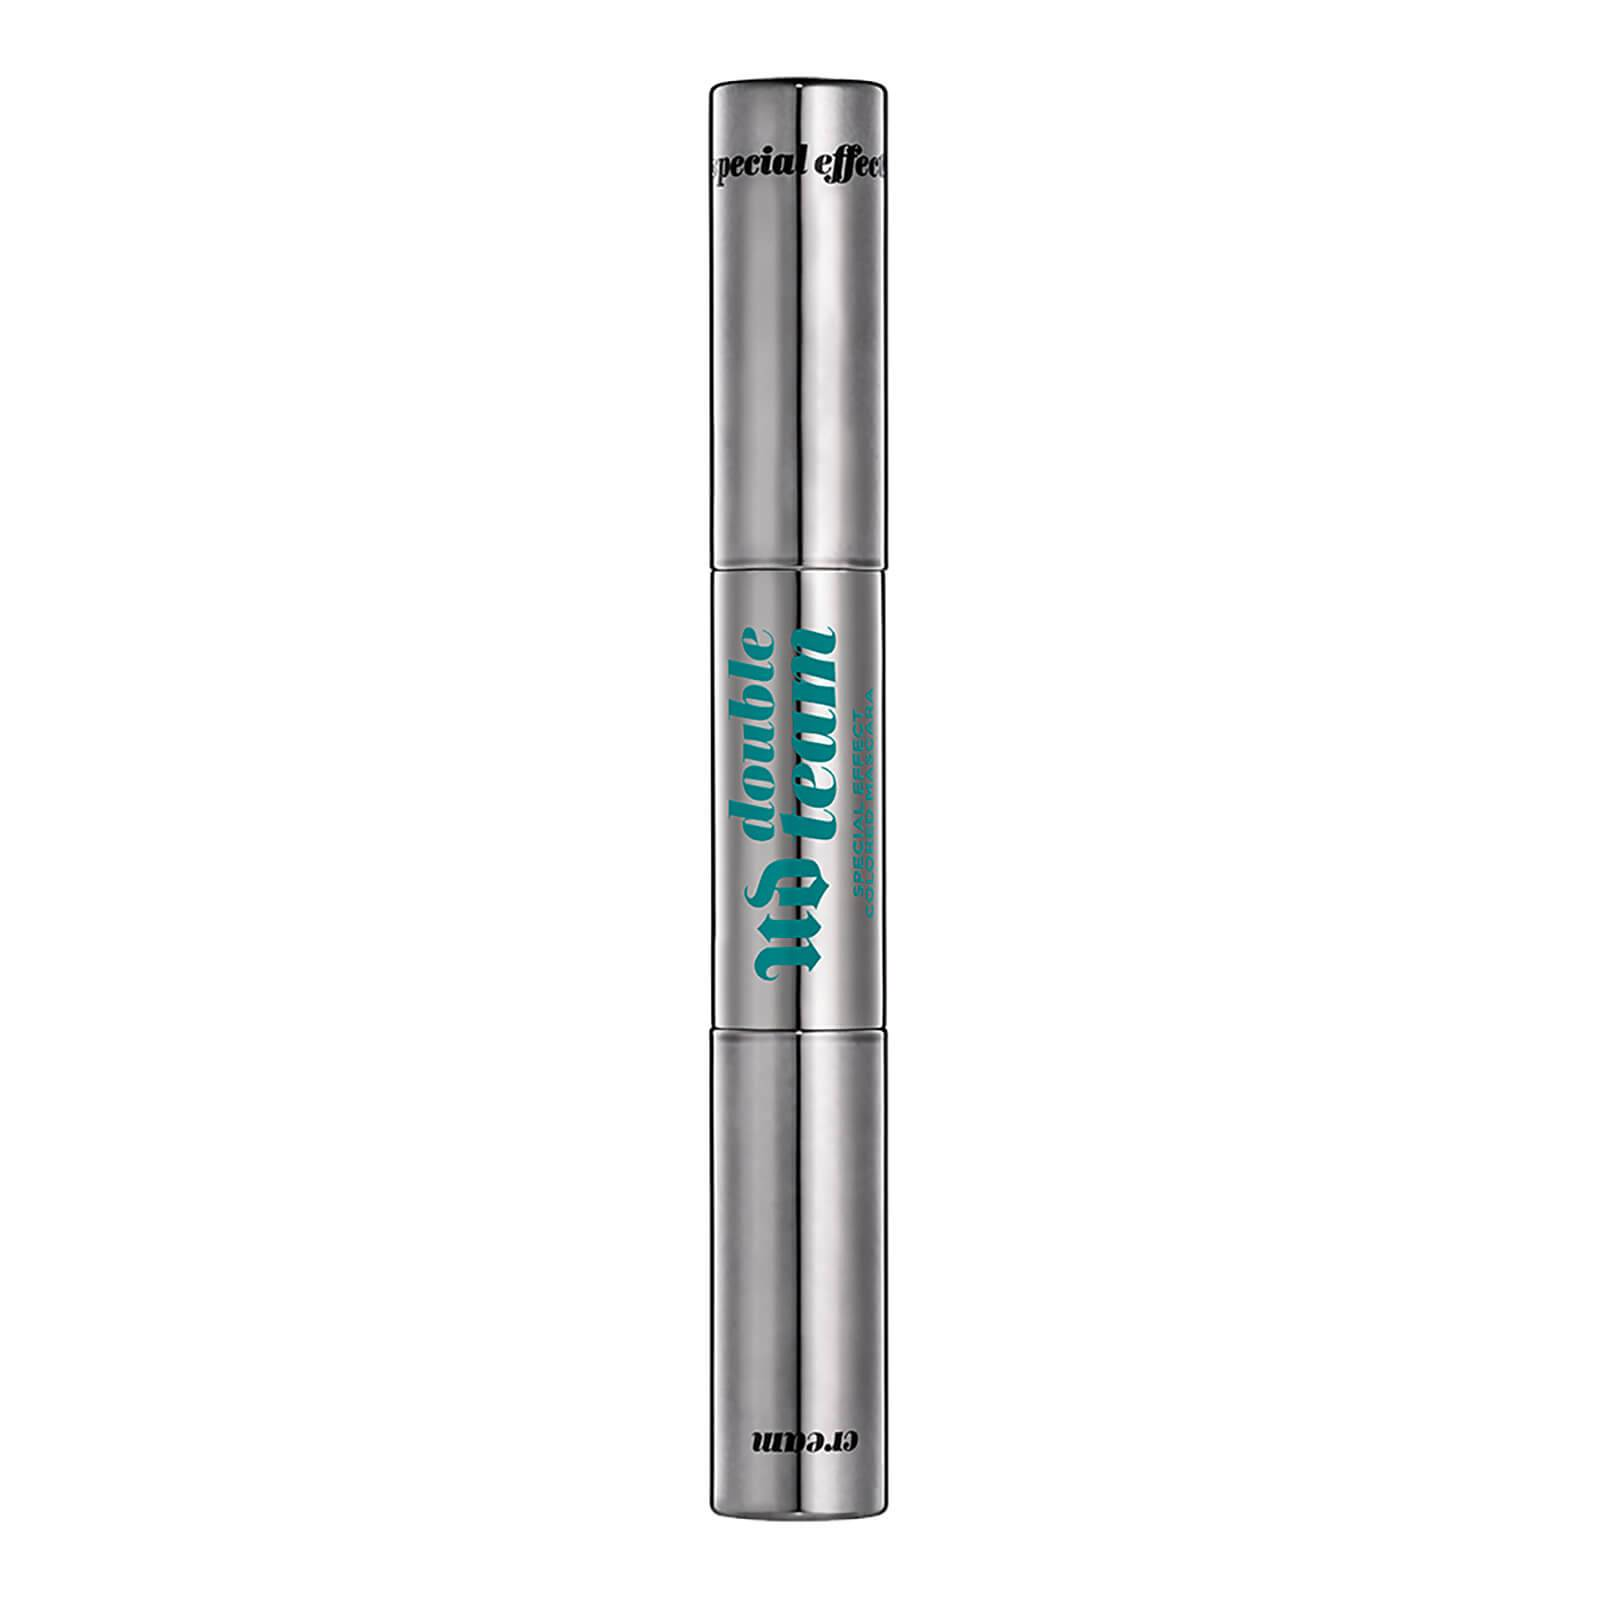 Urban Decay Double Team Special Effect mascara colorato - Deep End 2x4 ml